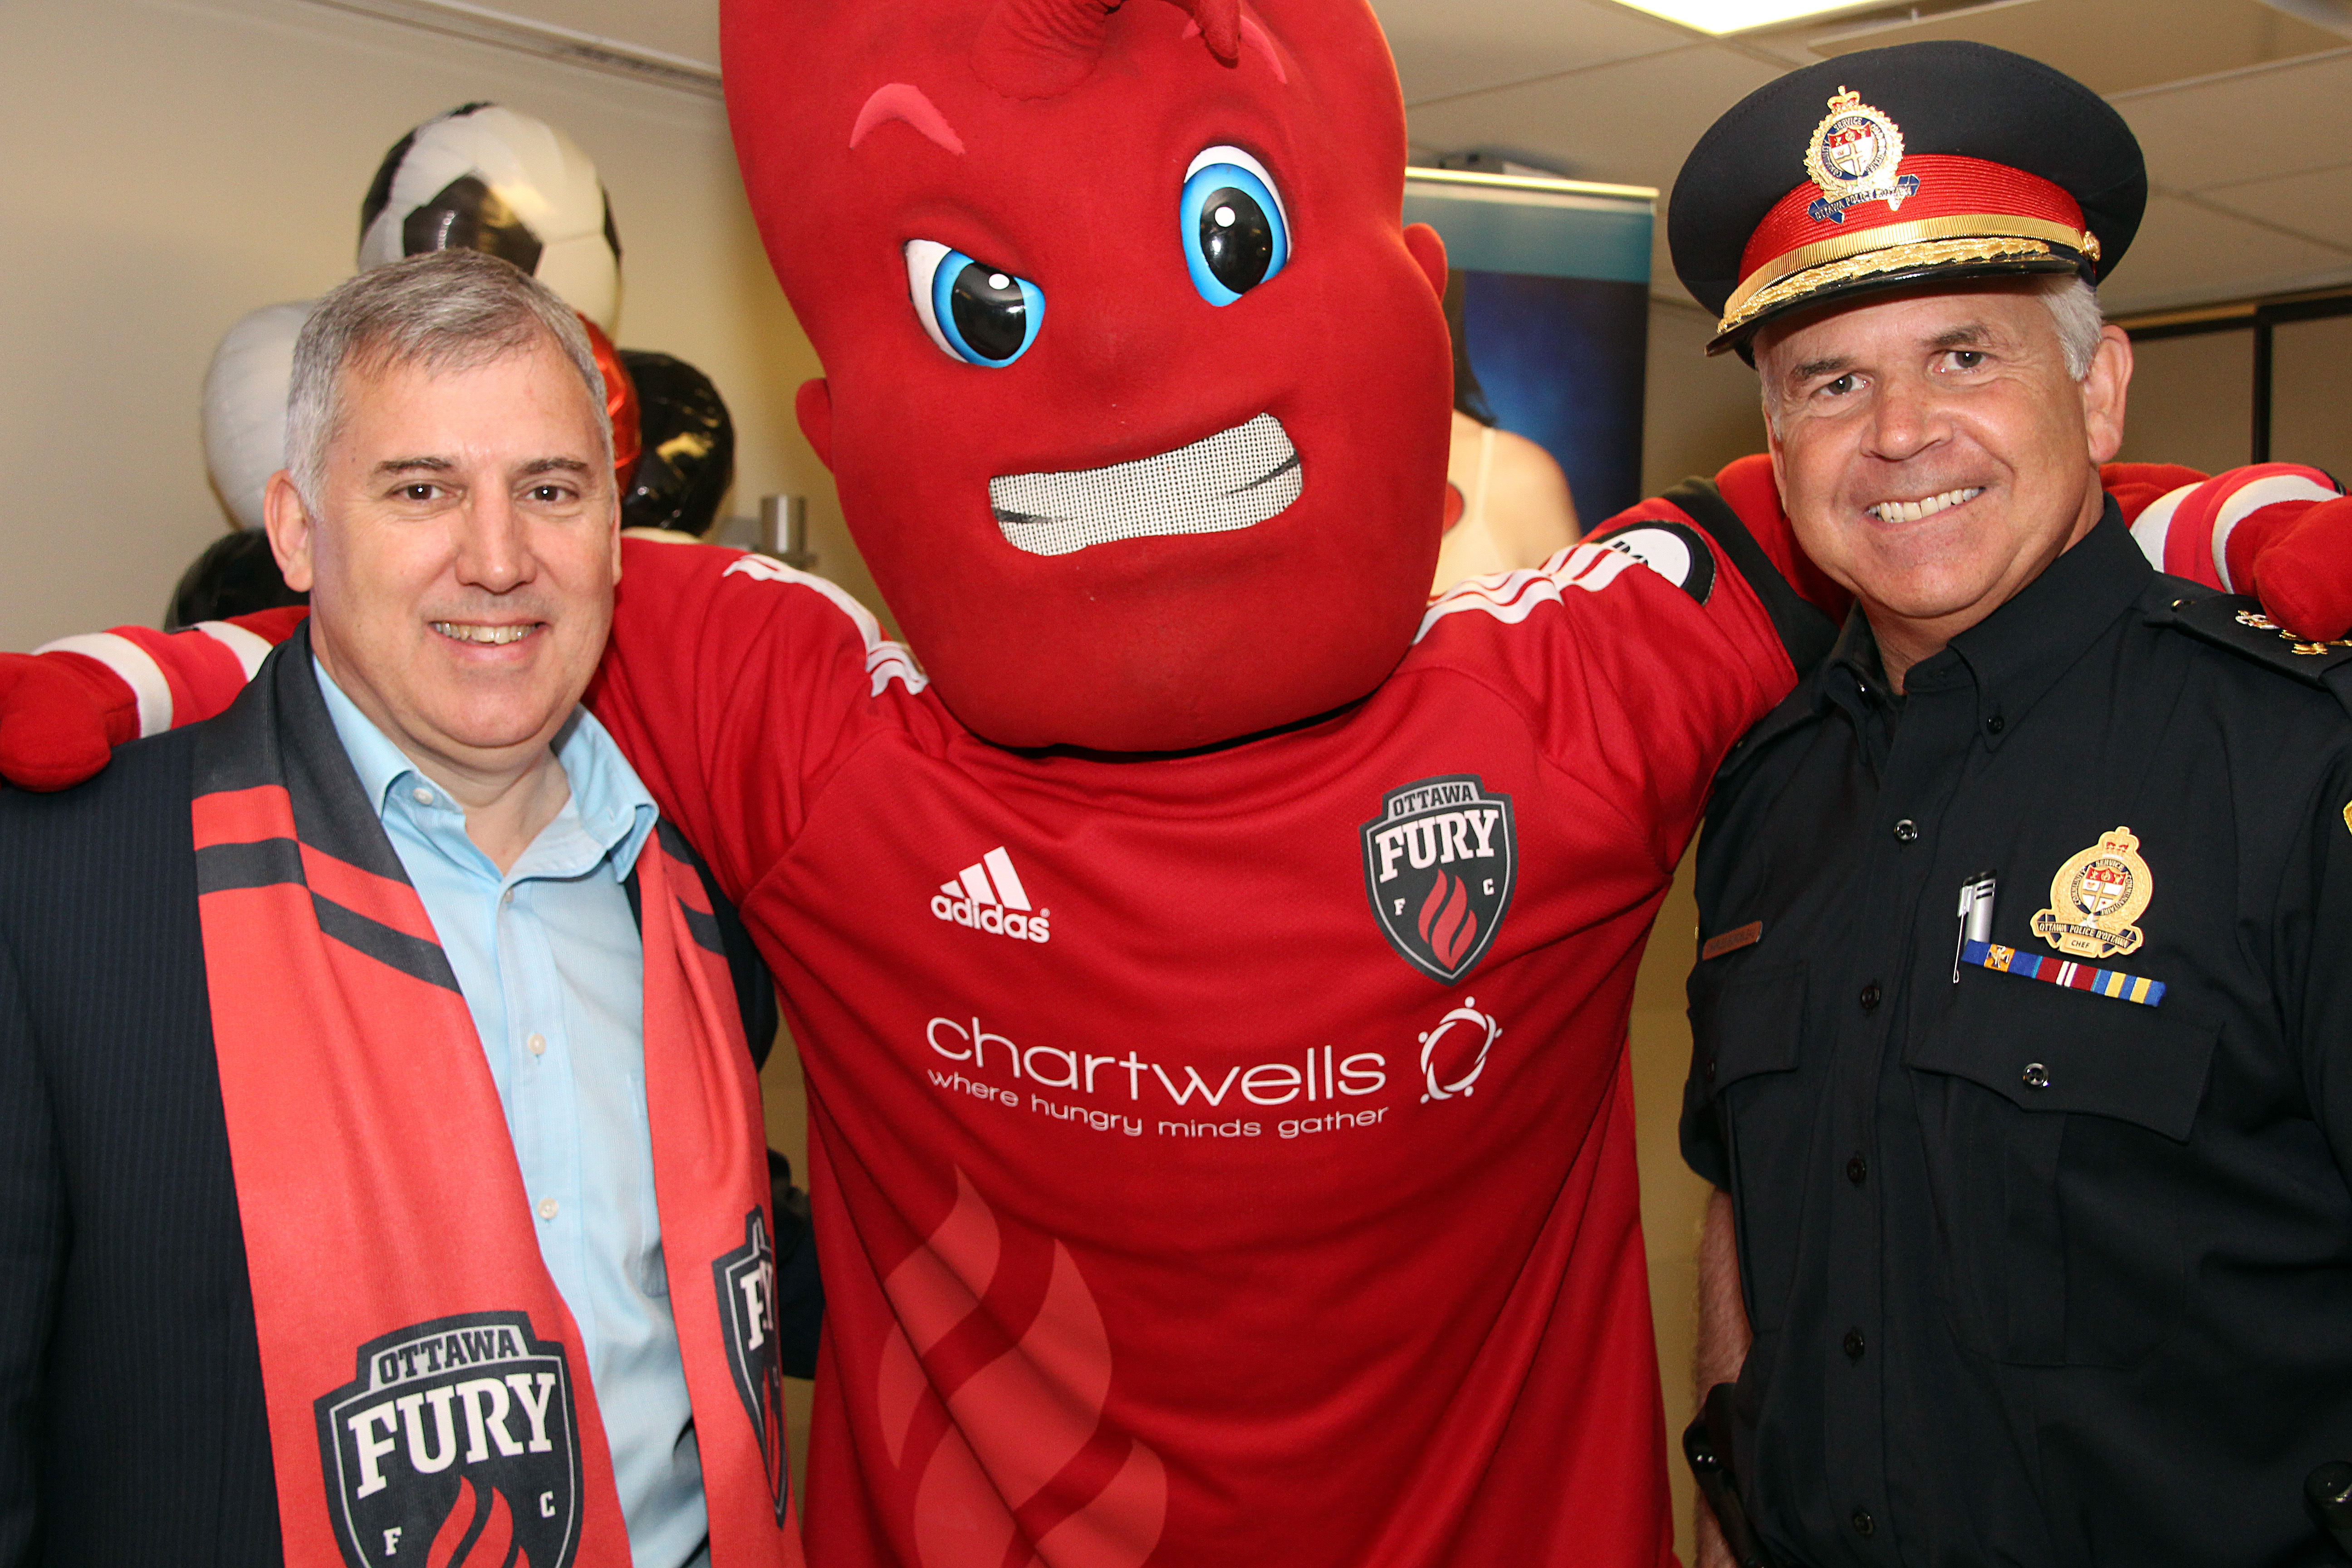 Fury for the Heart kick-off event